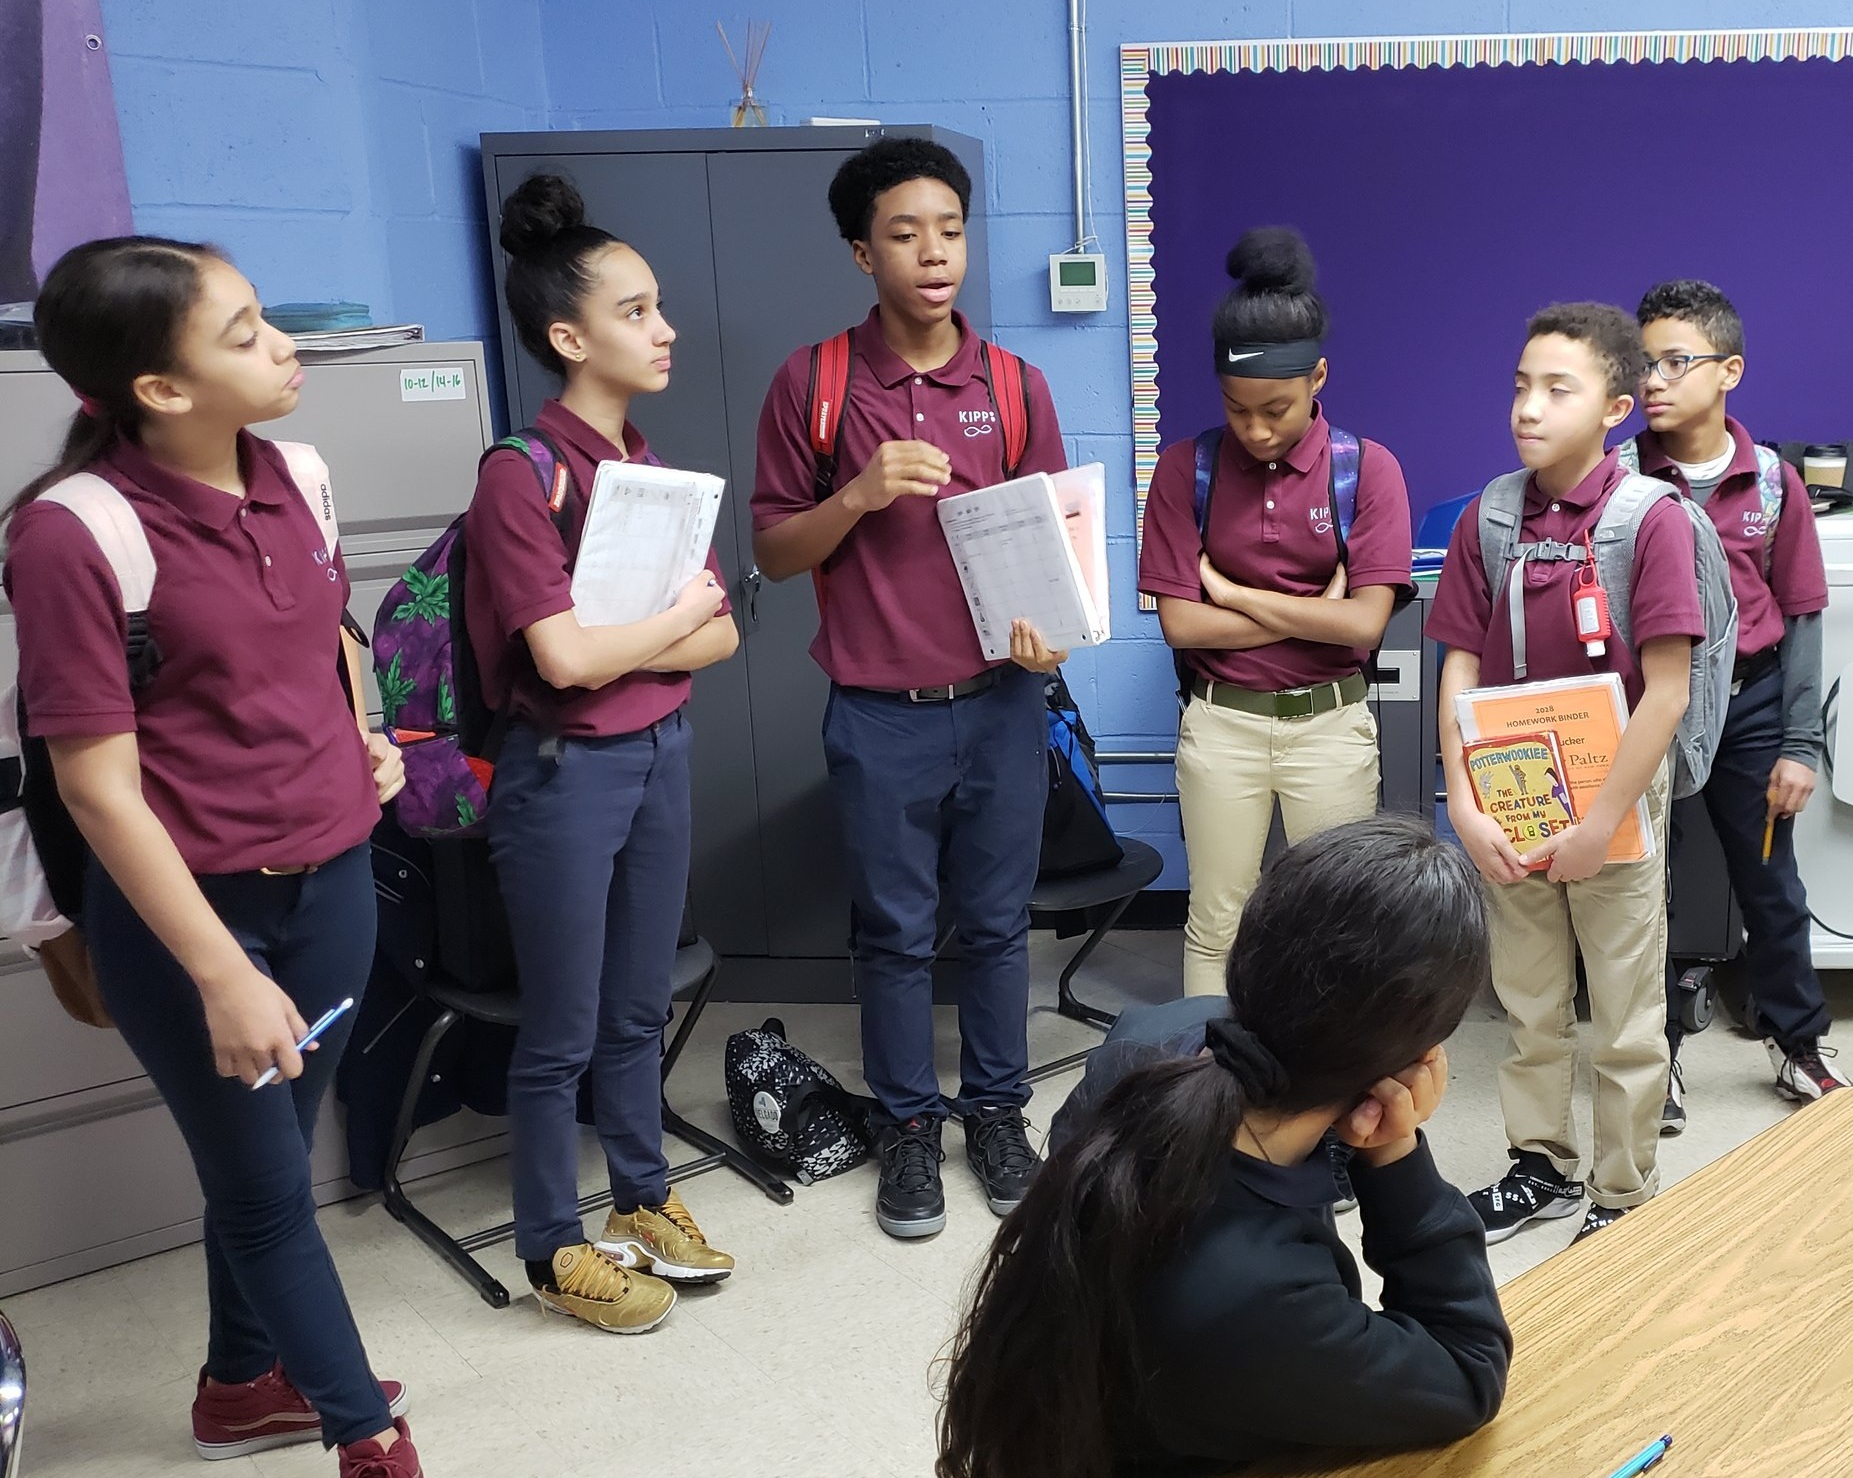 7th graders at another BEAM partner school, KIPP Infinity, tell their 6th grade colleagues about BEAM Discovery.